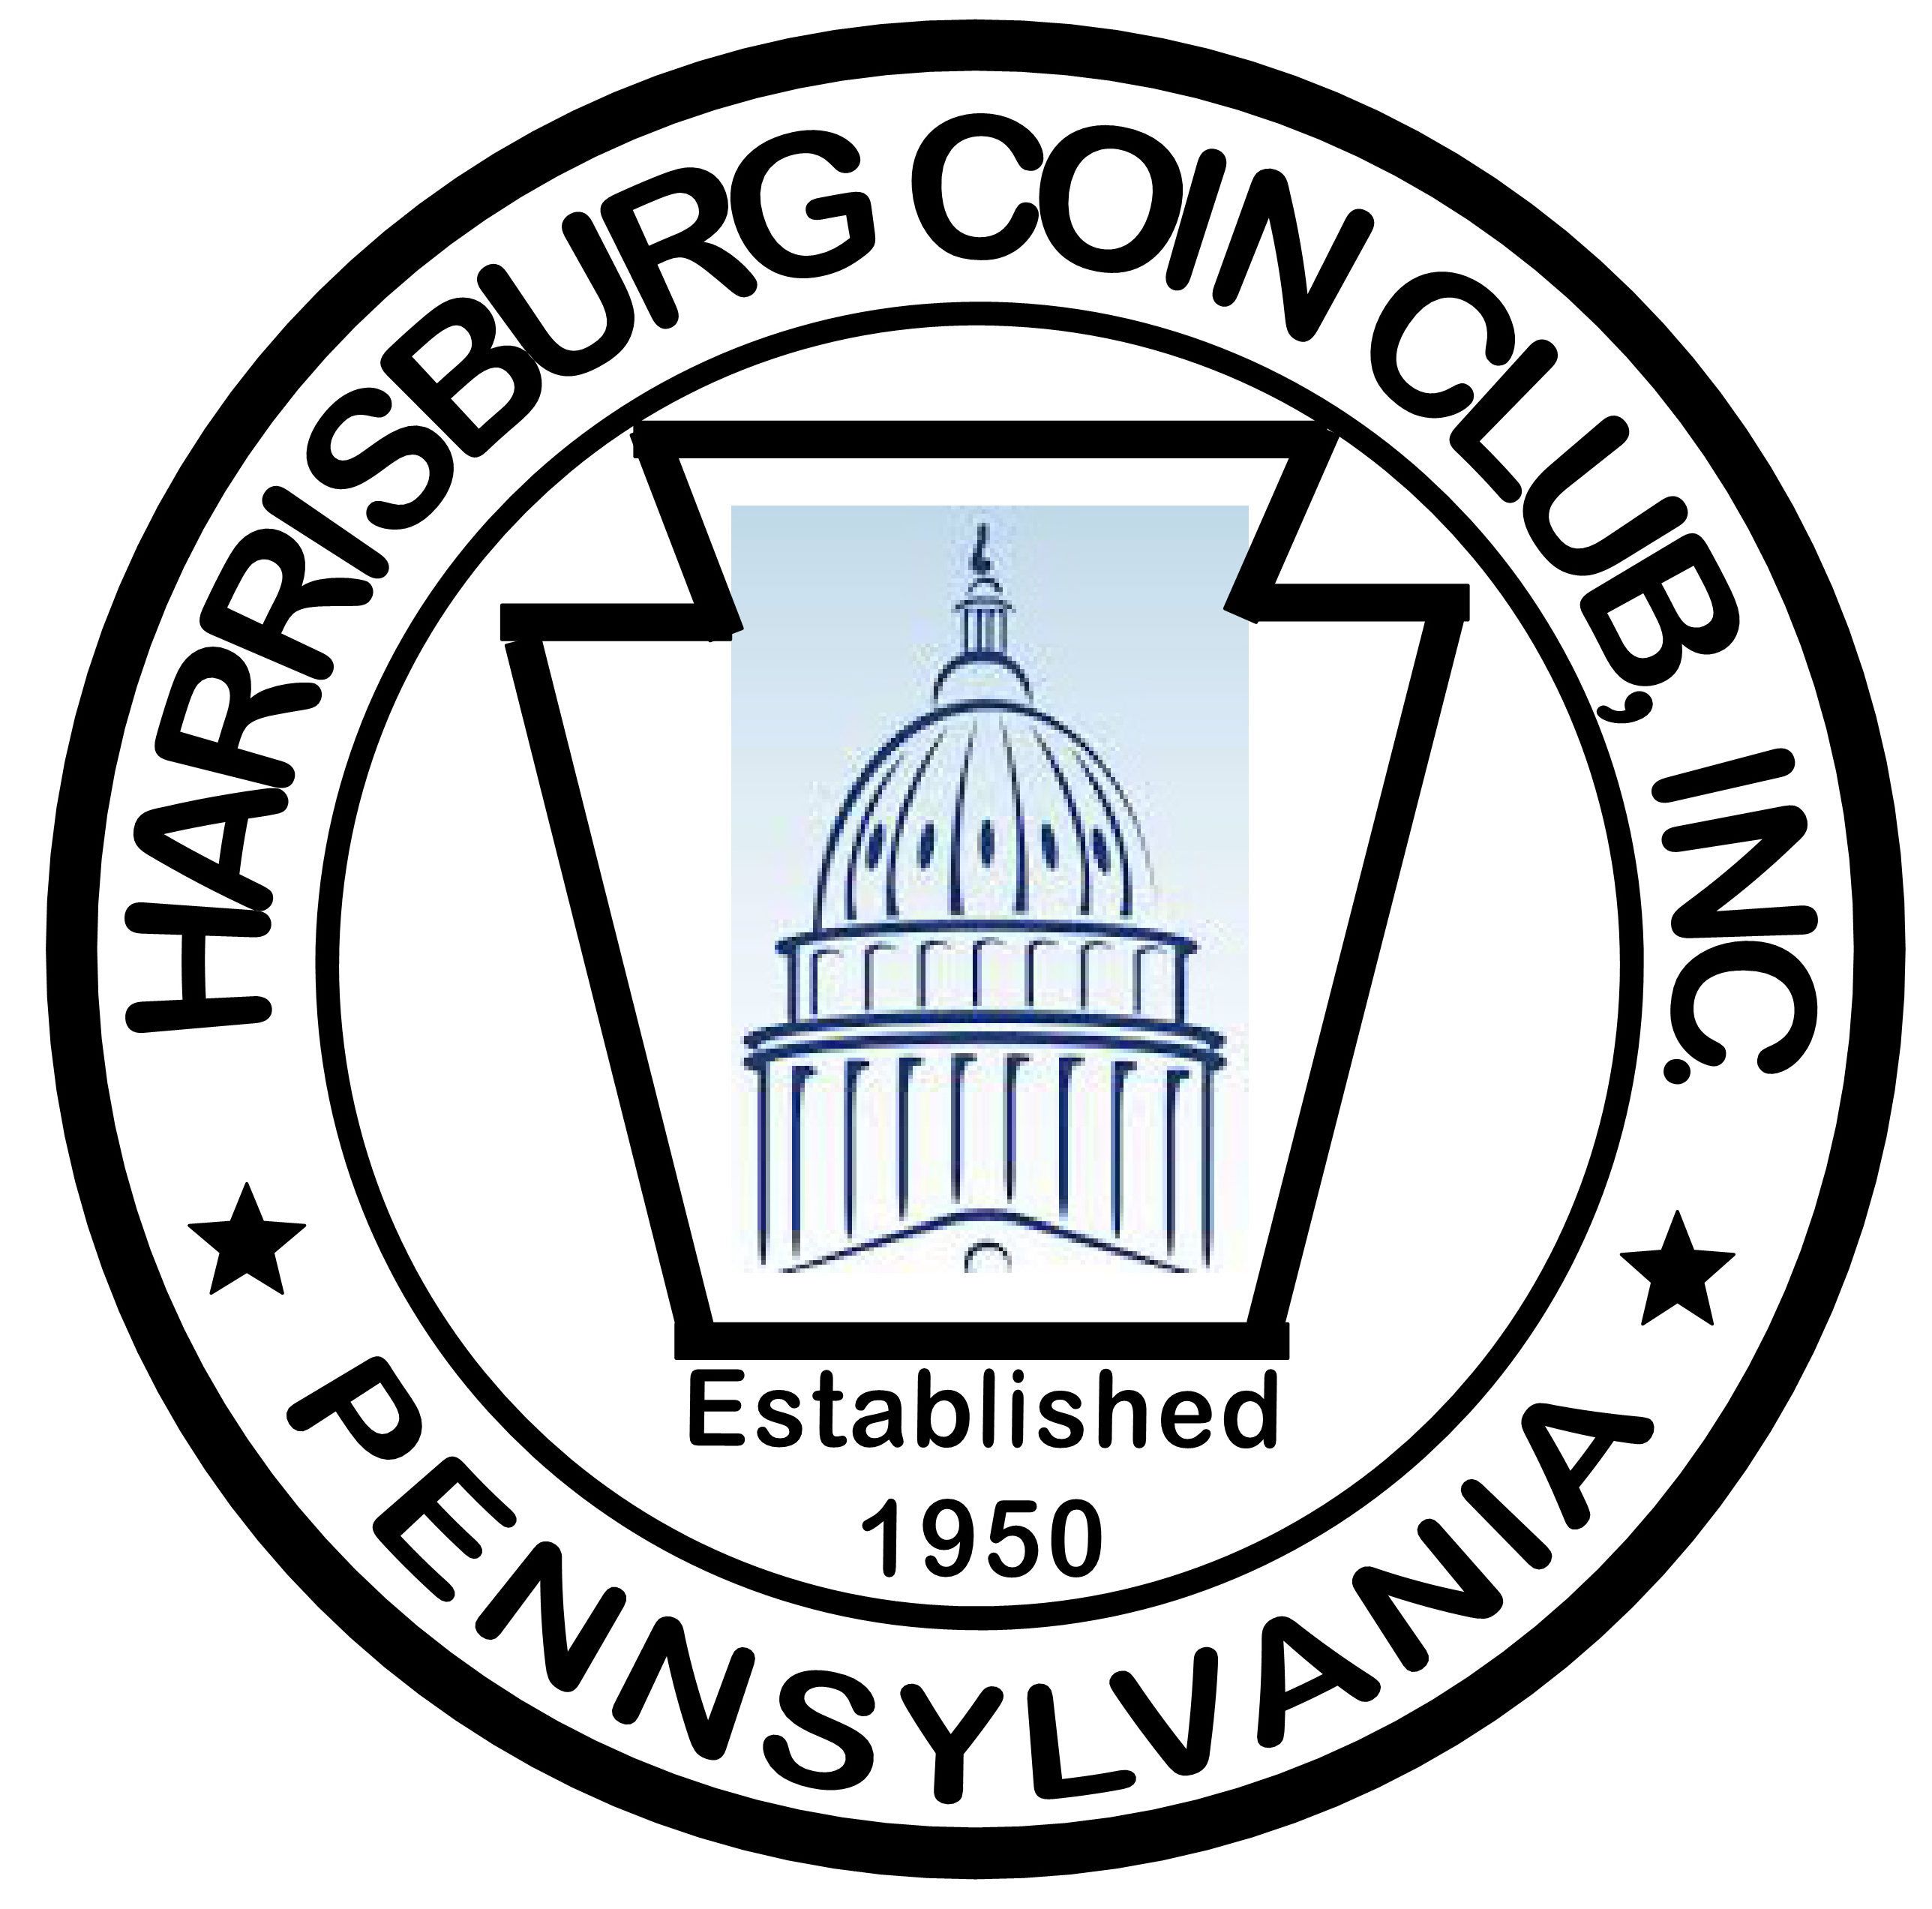 Harrisburg Coin Club, Inc.